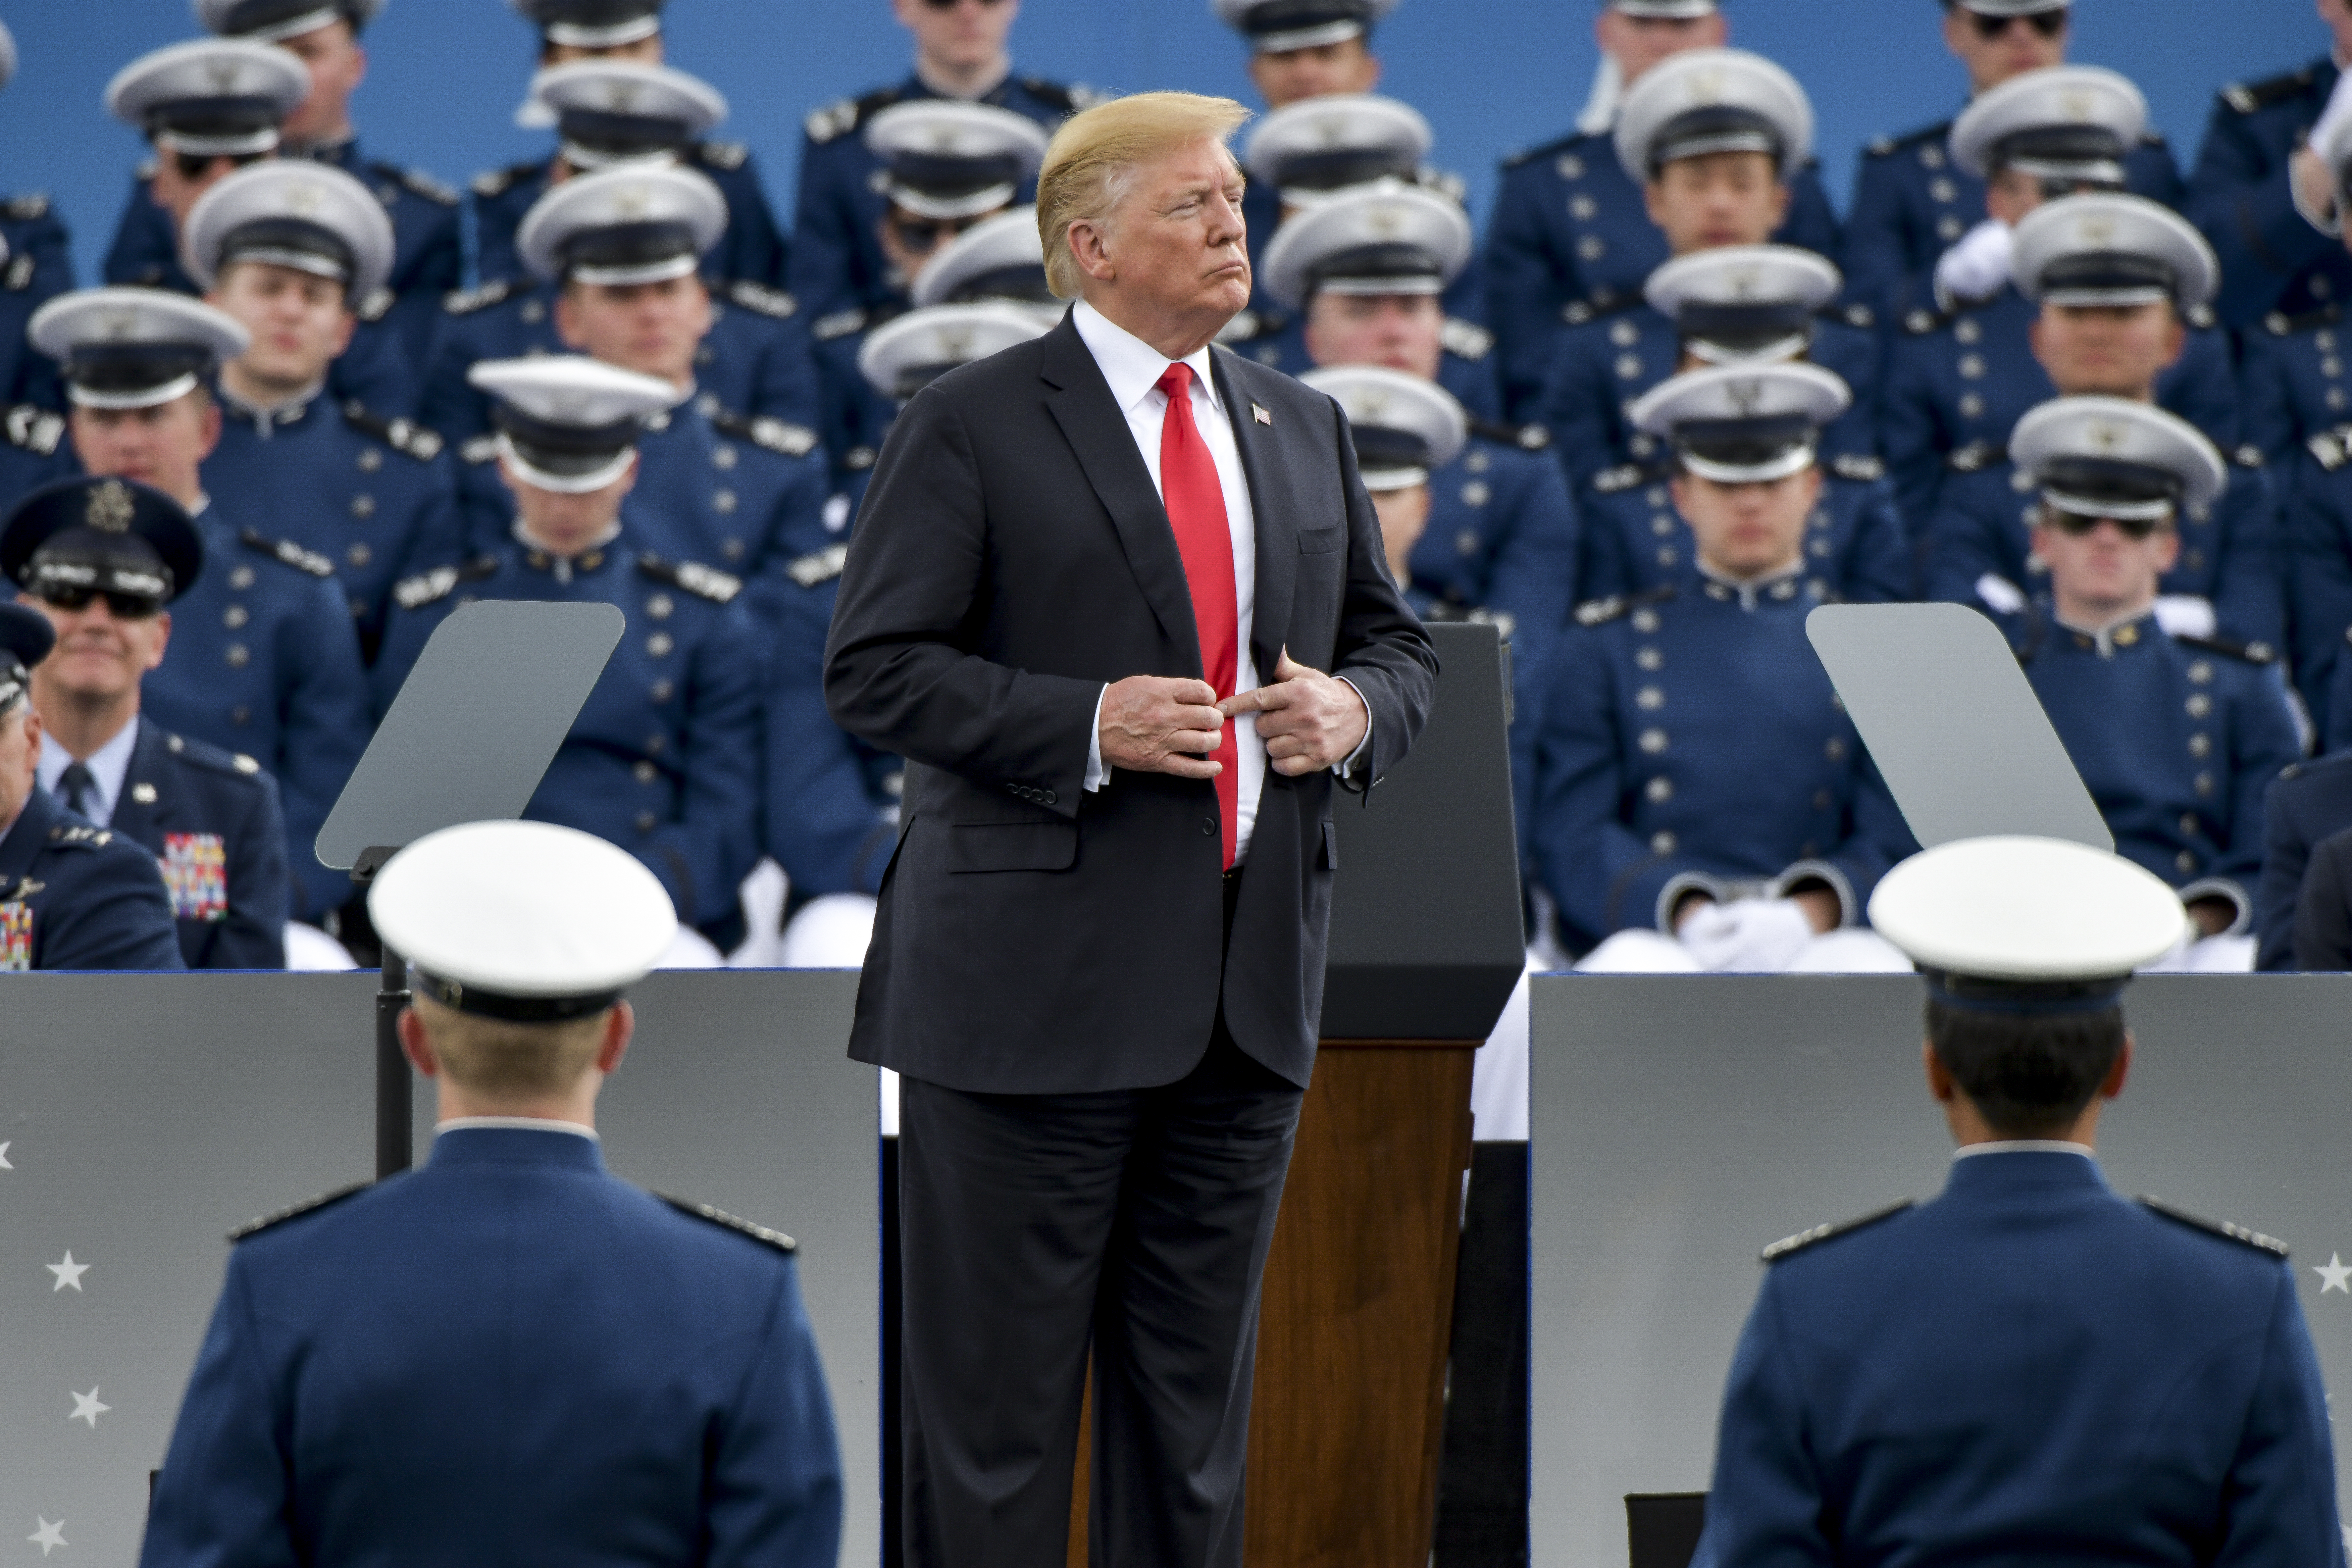 President Donald Trump waits to shake hands with United States Air Force Academy cadets as they receive their diplomas during their graduation ceremony at Falcon Stadium on May 30, 2019 in Colorado Springs, Colorado. (Photo by Michael Ciaglo/Getty Images)